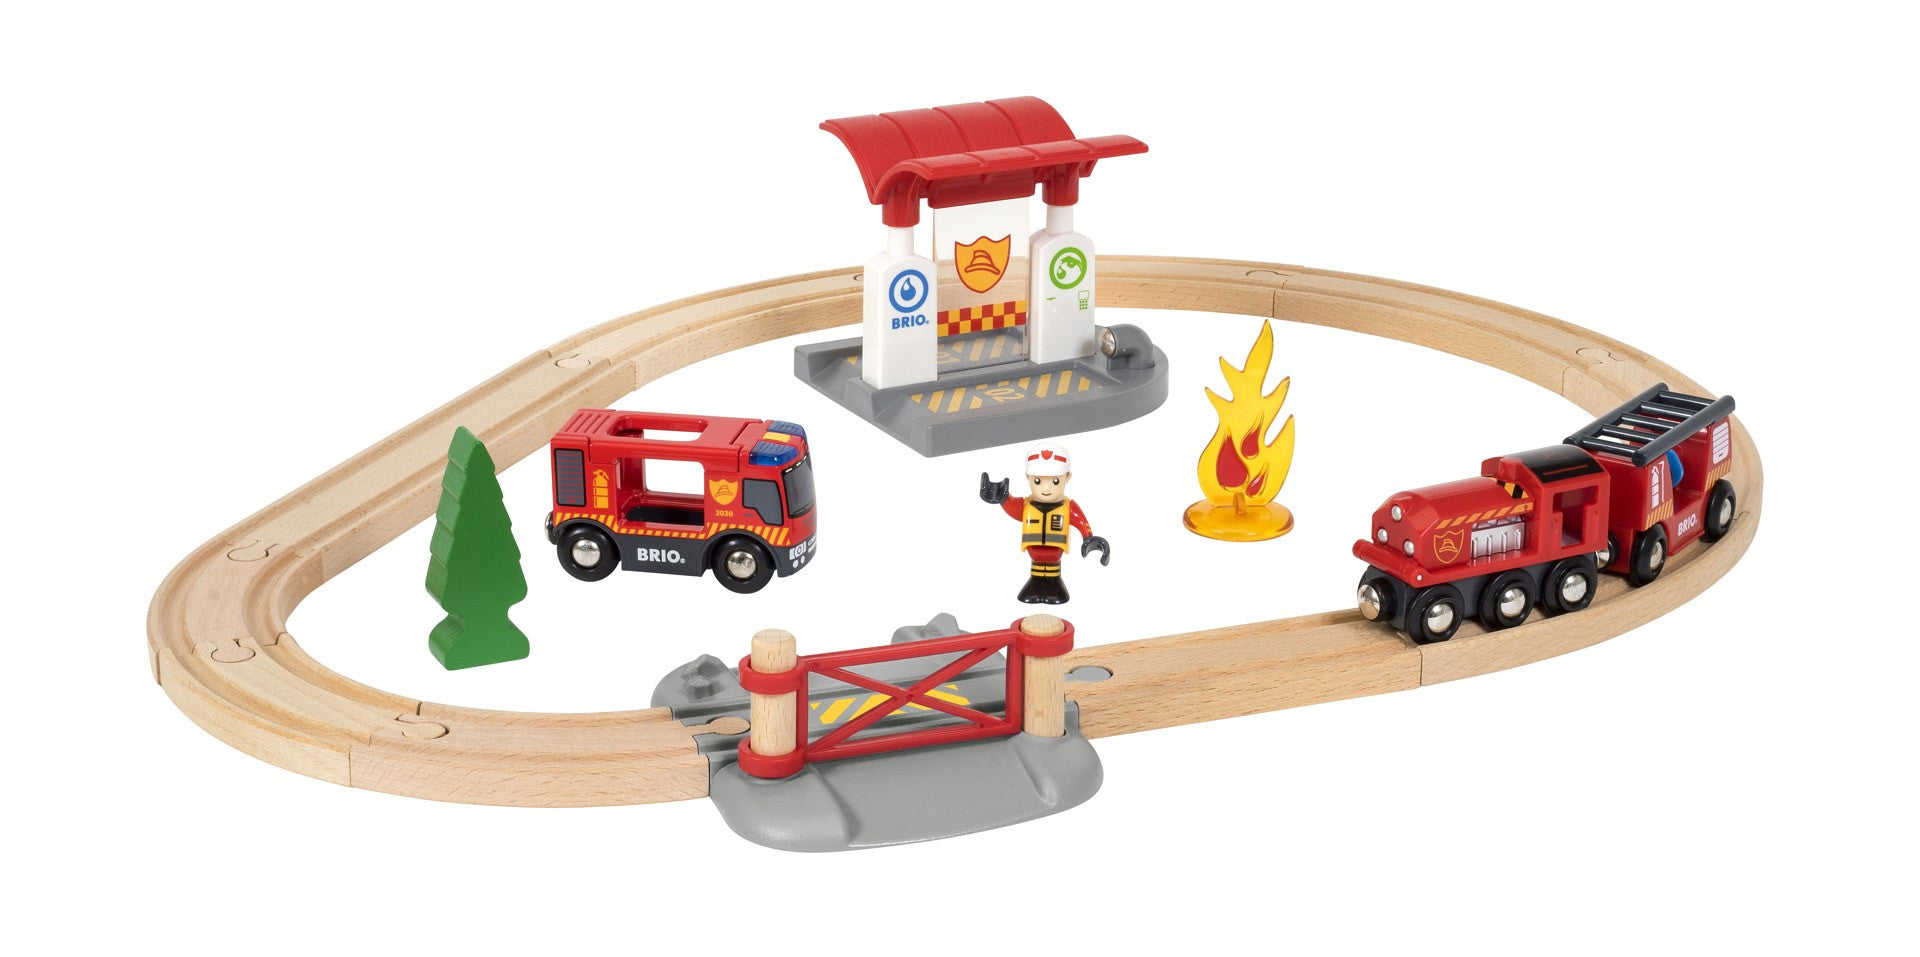 BRIO Train Set - Rescue Fire Flat 33815